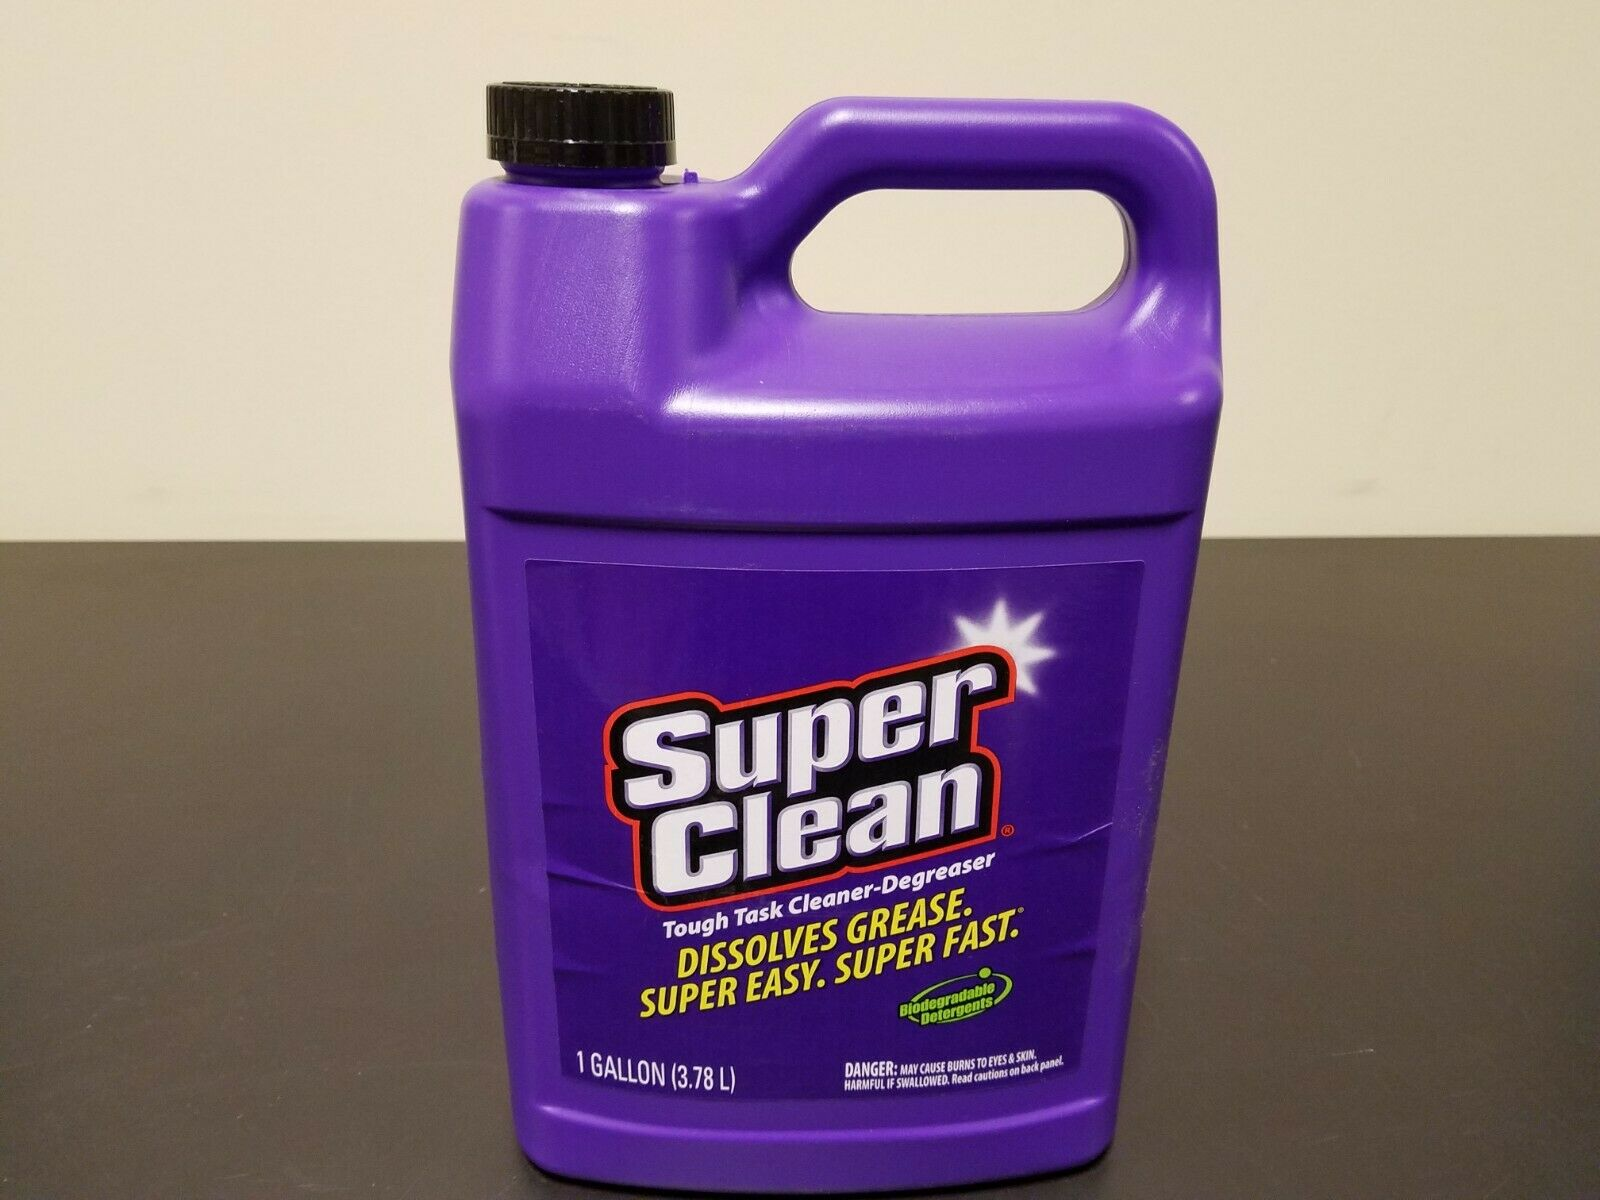 Superclean 101723 1 Gal. Cleaner/Degreaser Jug